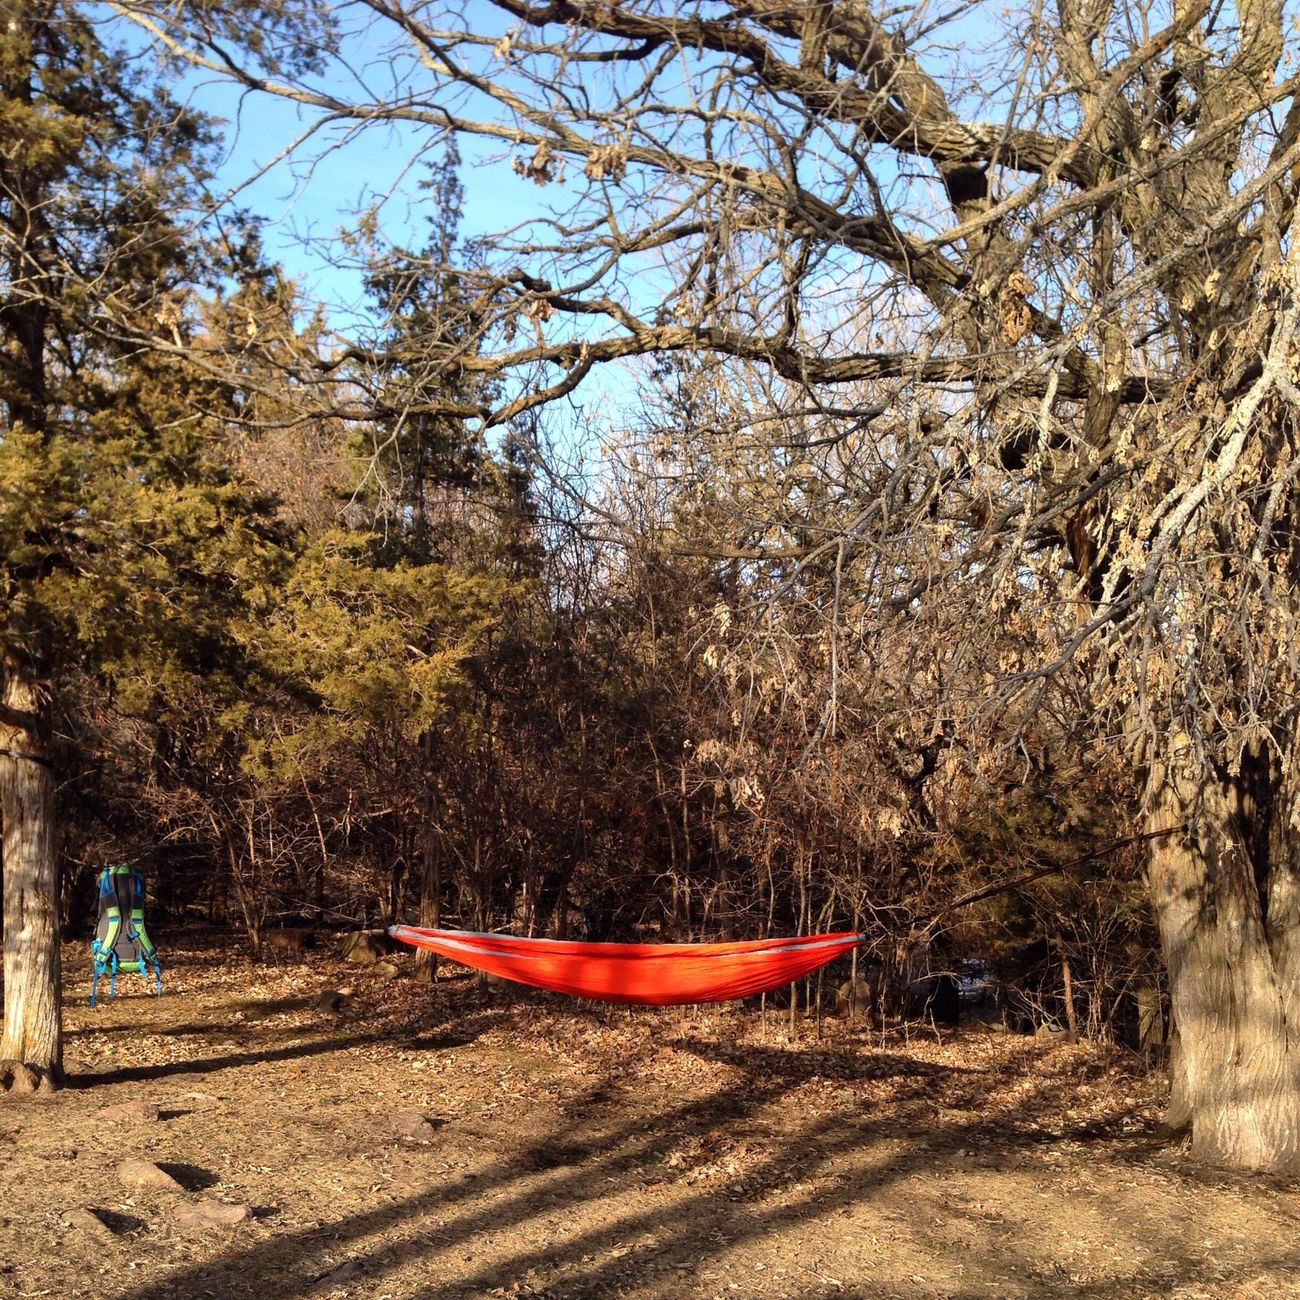 Camping Hammock Enjoying Nature